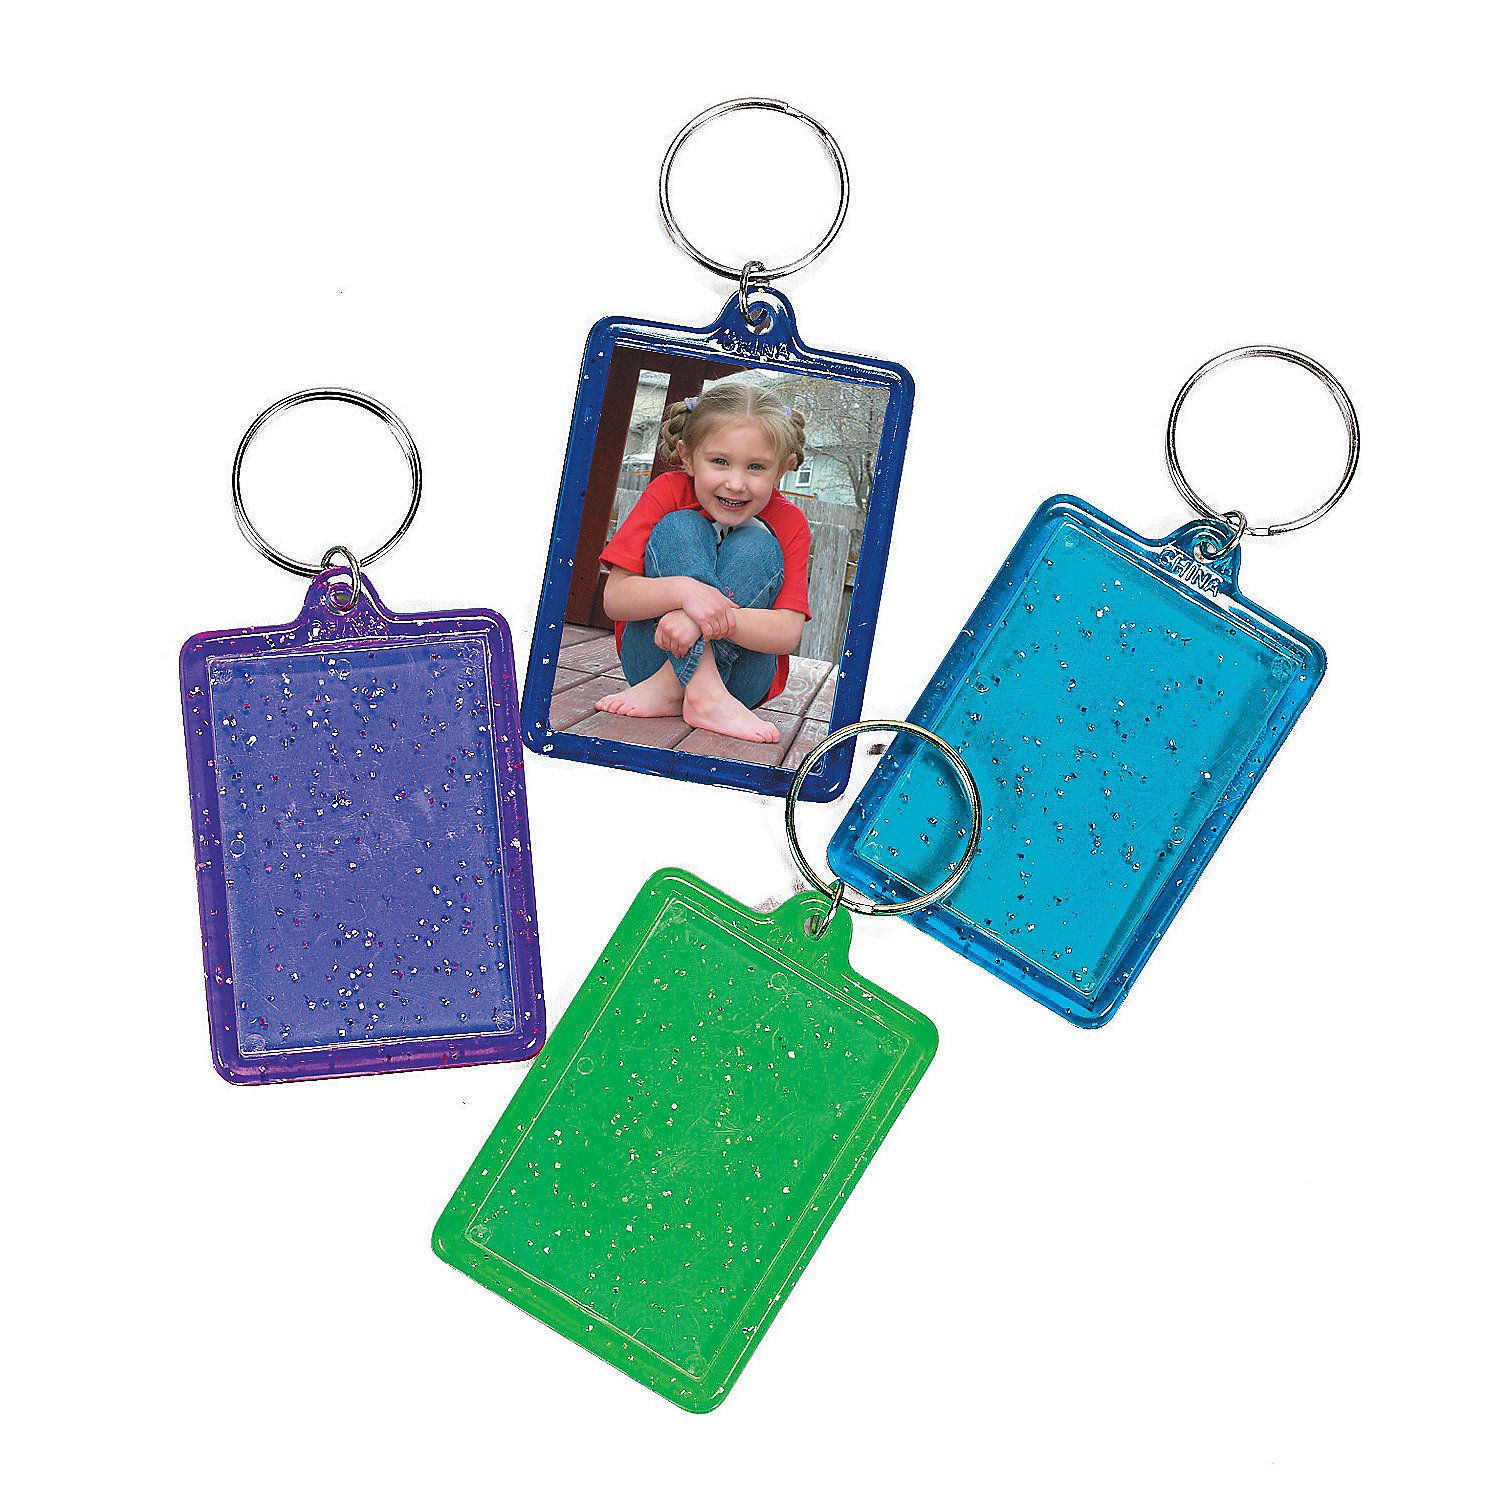 Glitter picture frame keychains glitter pictures key chains and glitter picture frame keychains jeuxipadfo Image collections